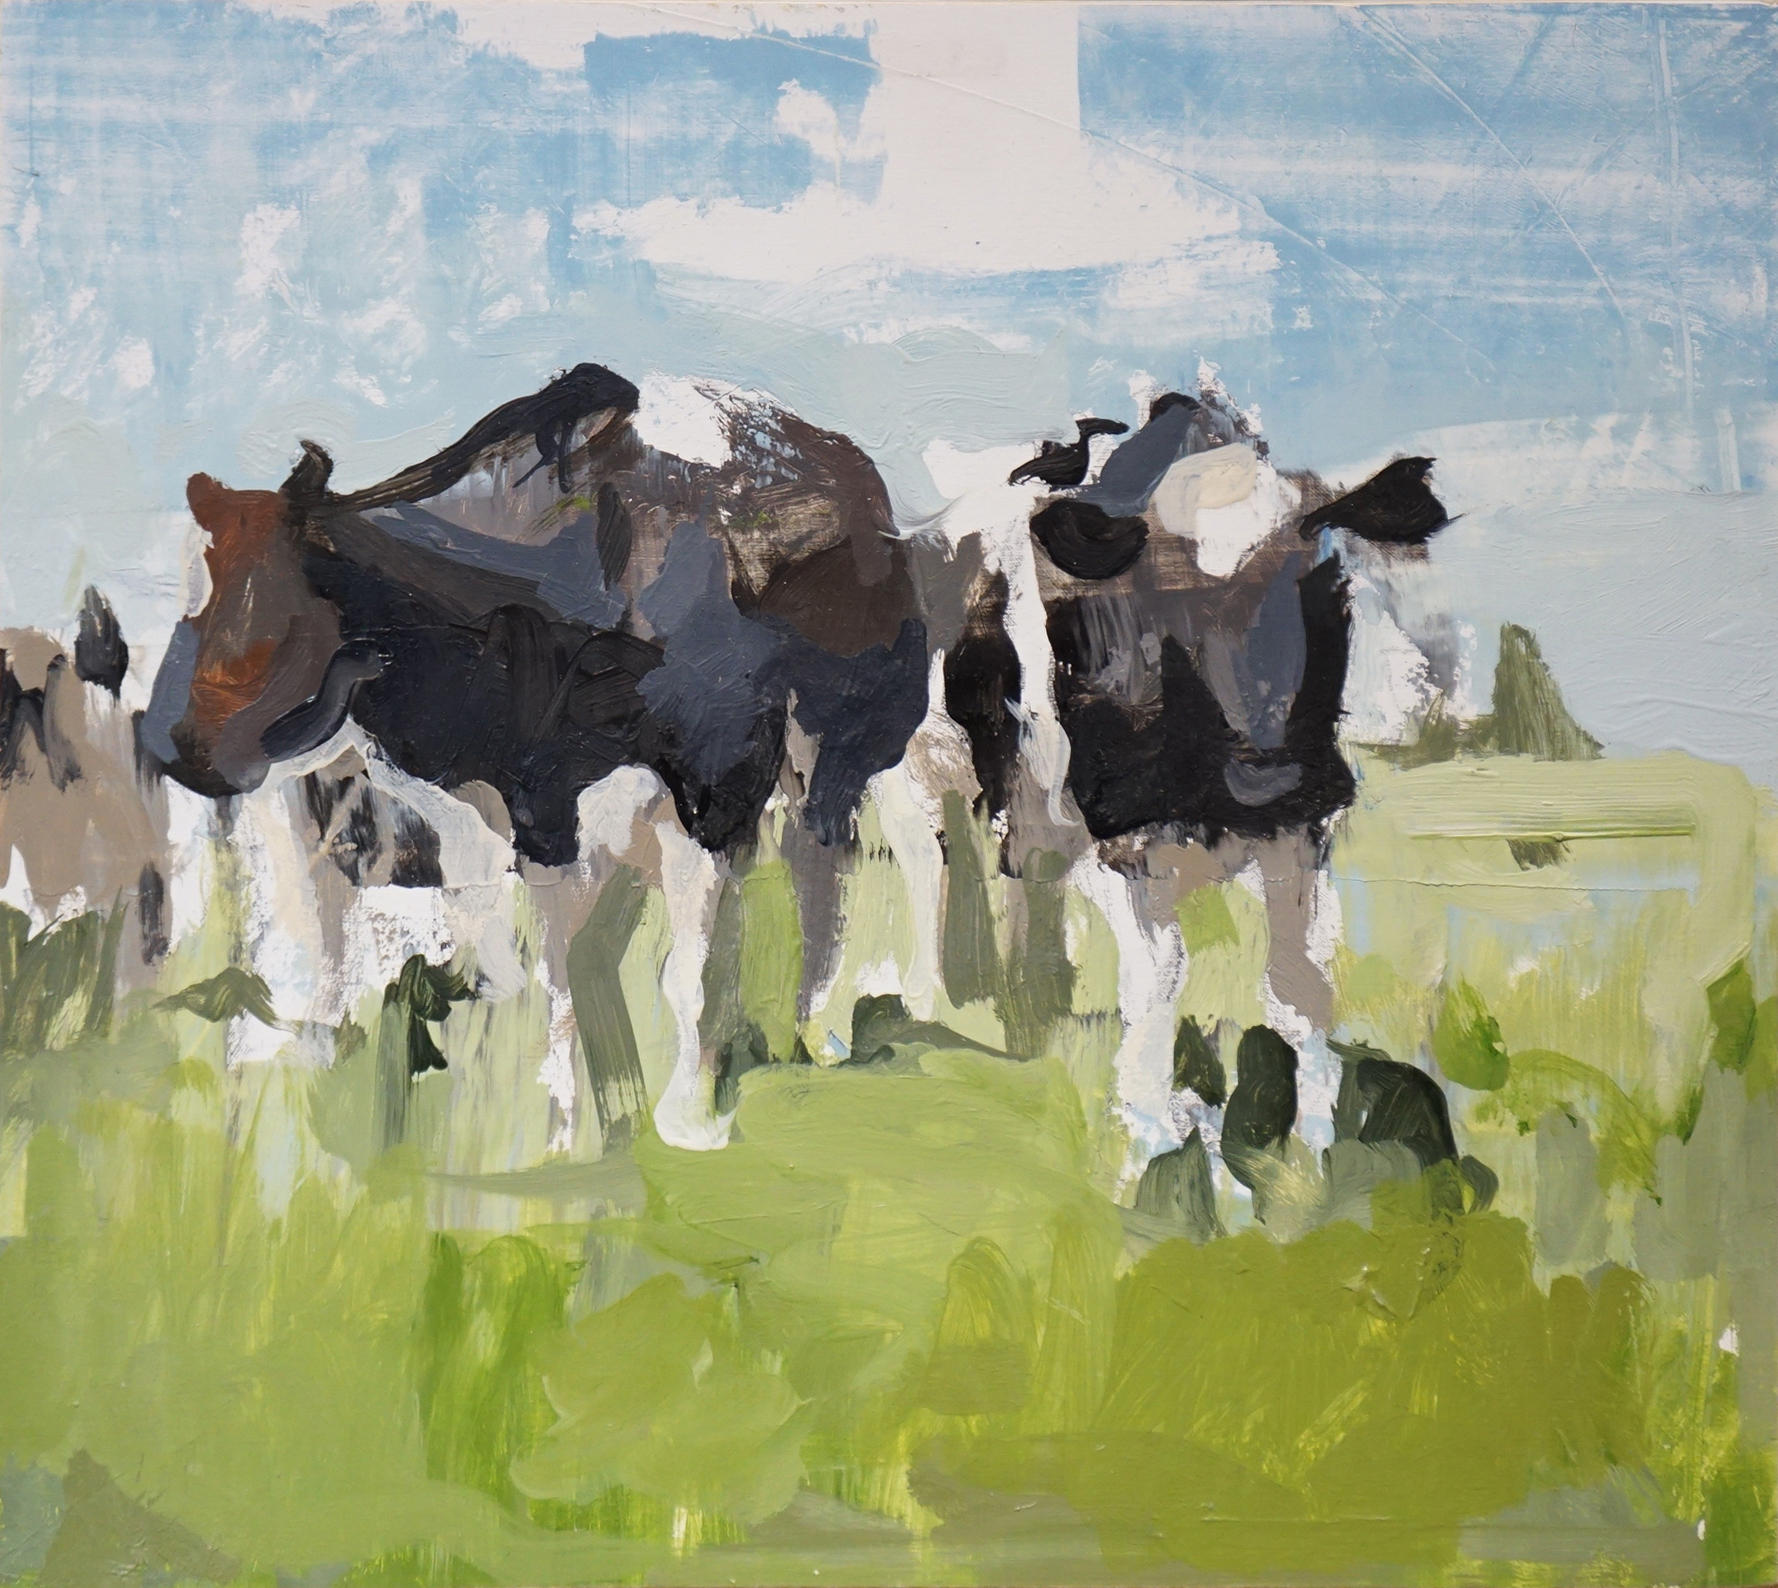 mark-crenshaw-1653-black-and-white-cows-in-blue-sky-green-grass.jpg